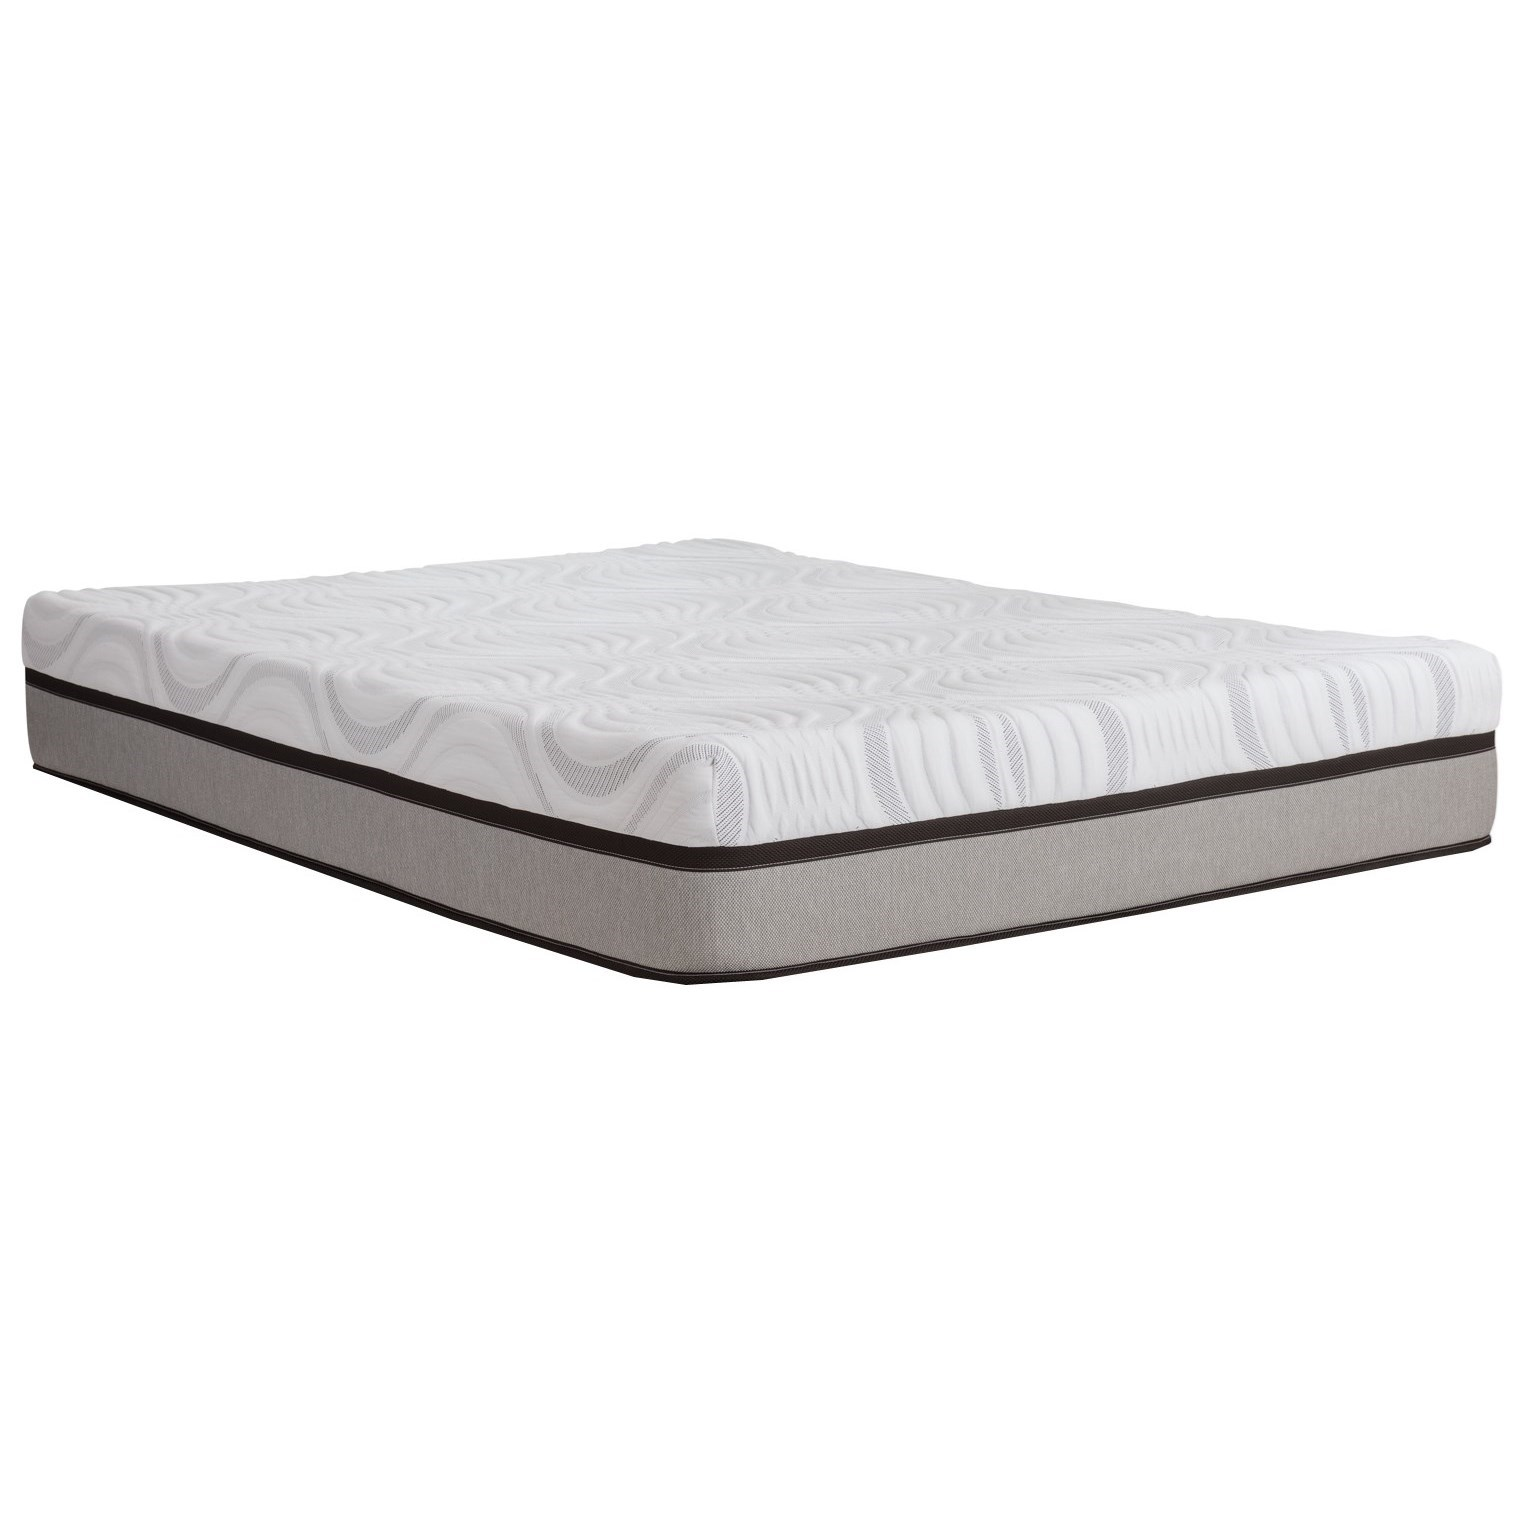 Lyndale Plush Hybrid Full Hybrid Mattress by Southerland Bedding Co. at Wilcox Furniture